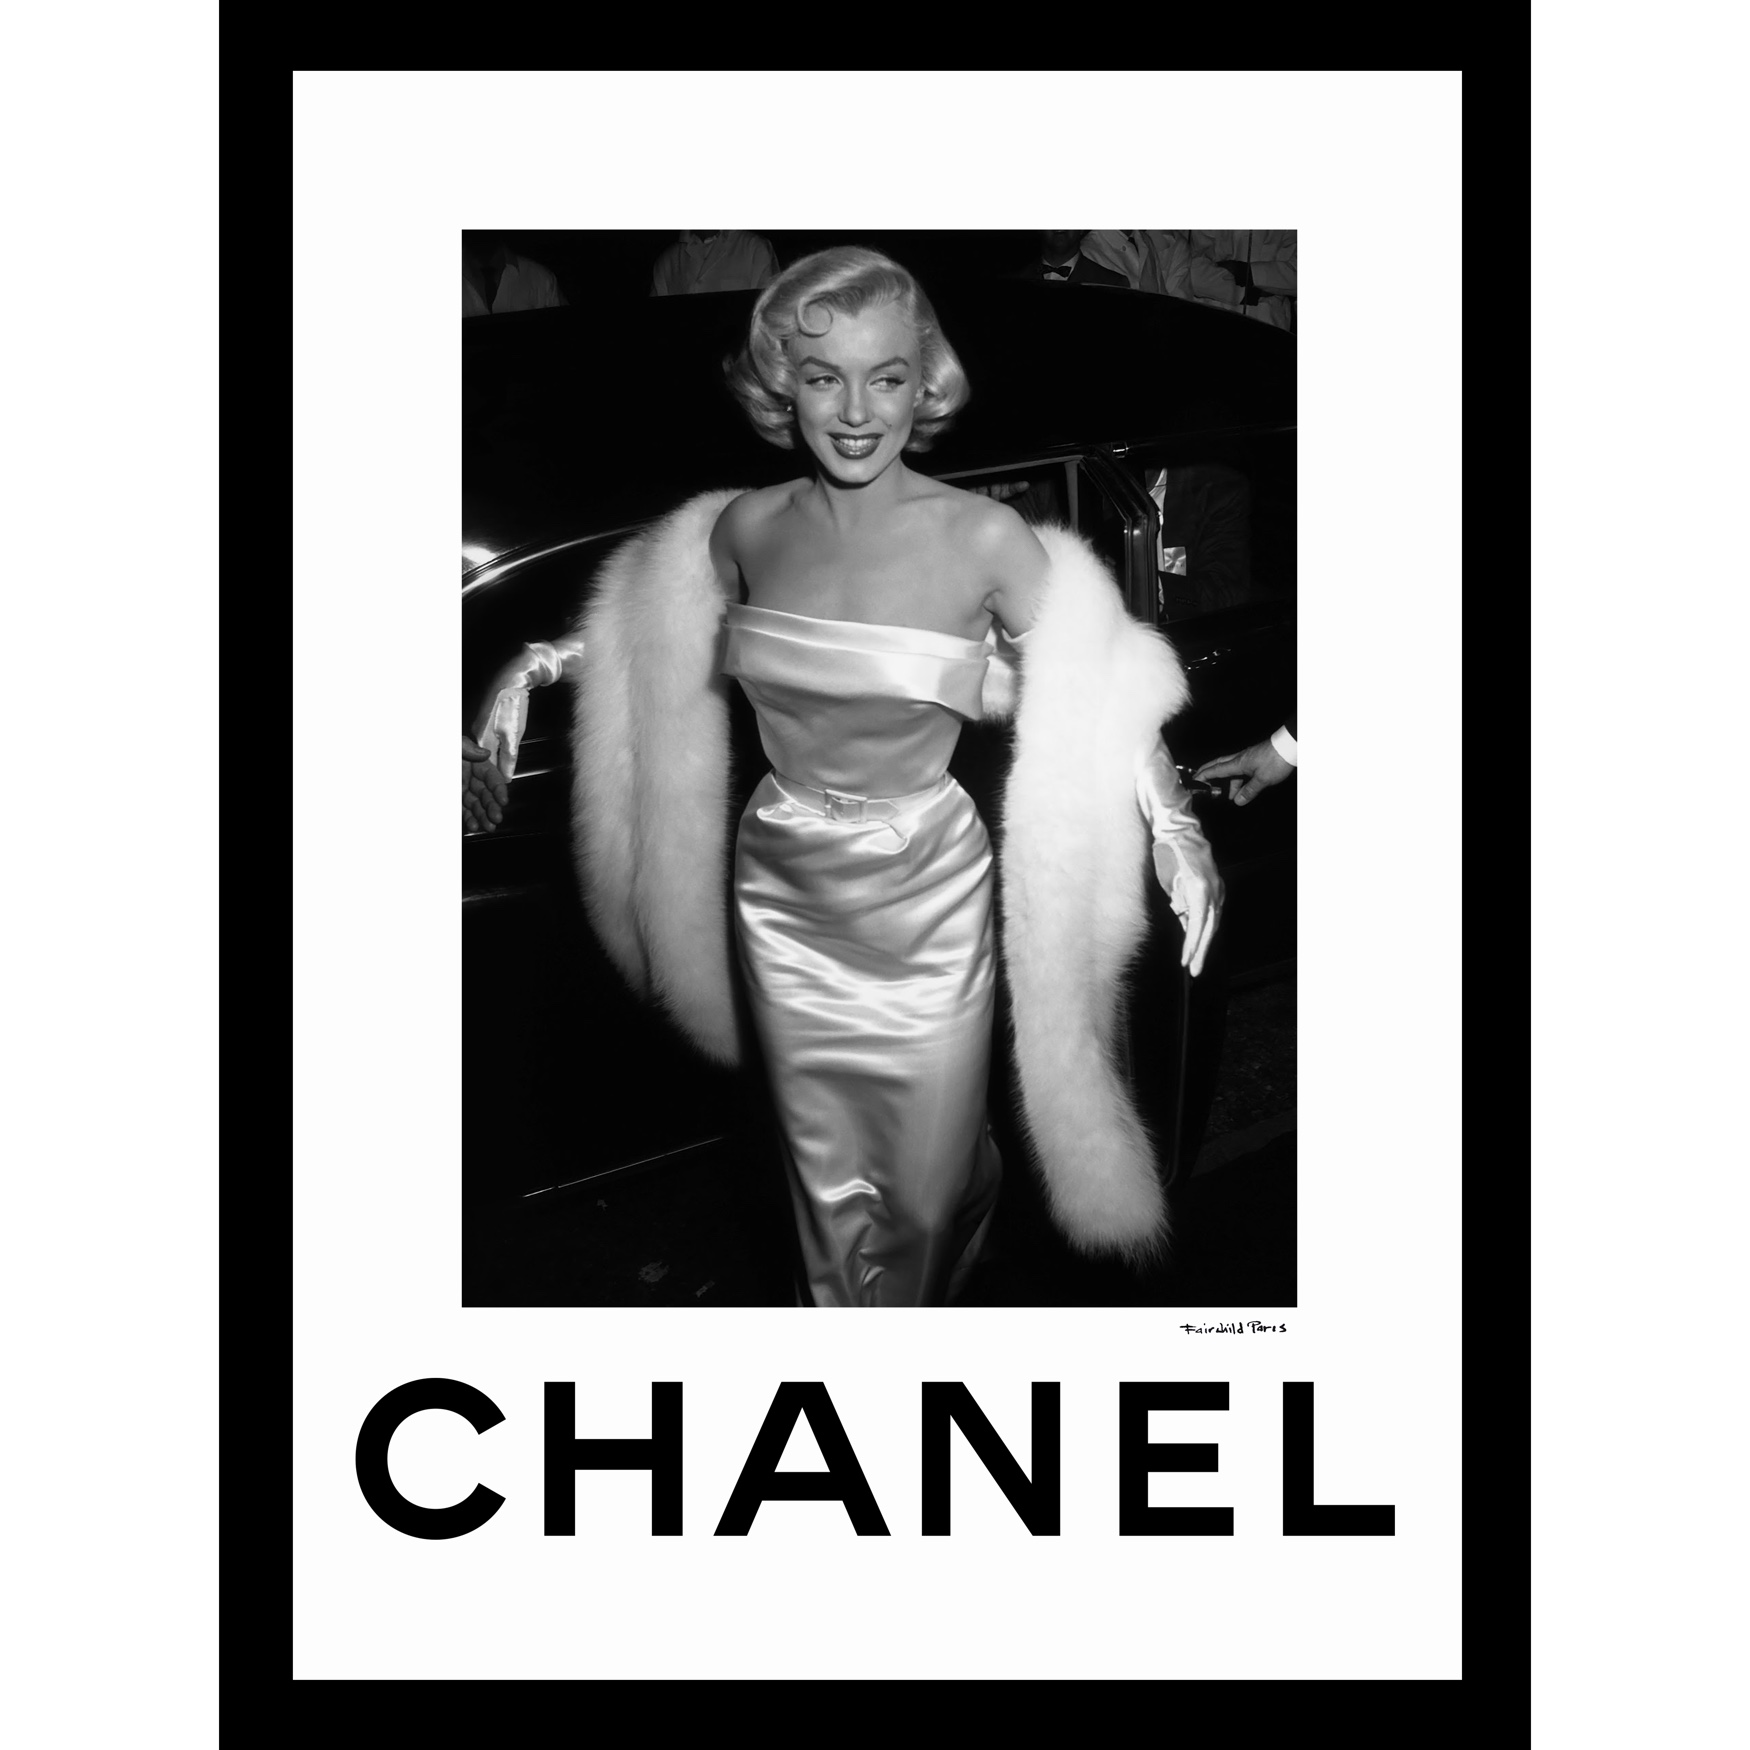 Chanel Marilyn Monroe Glamour 14x18 Framed Print, BLACK WHITE